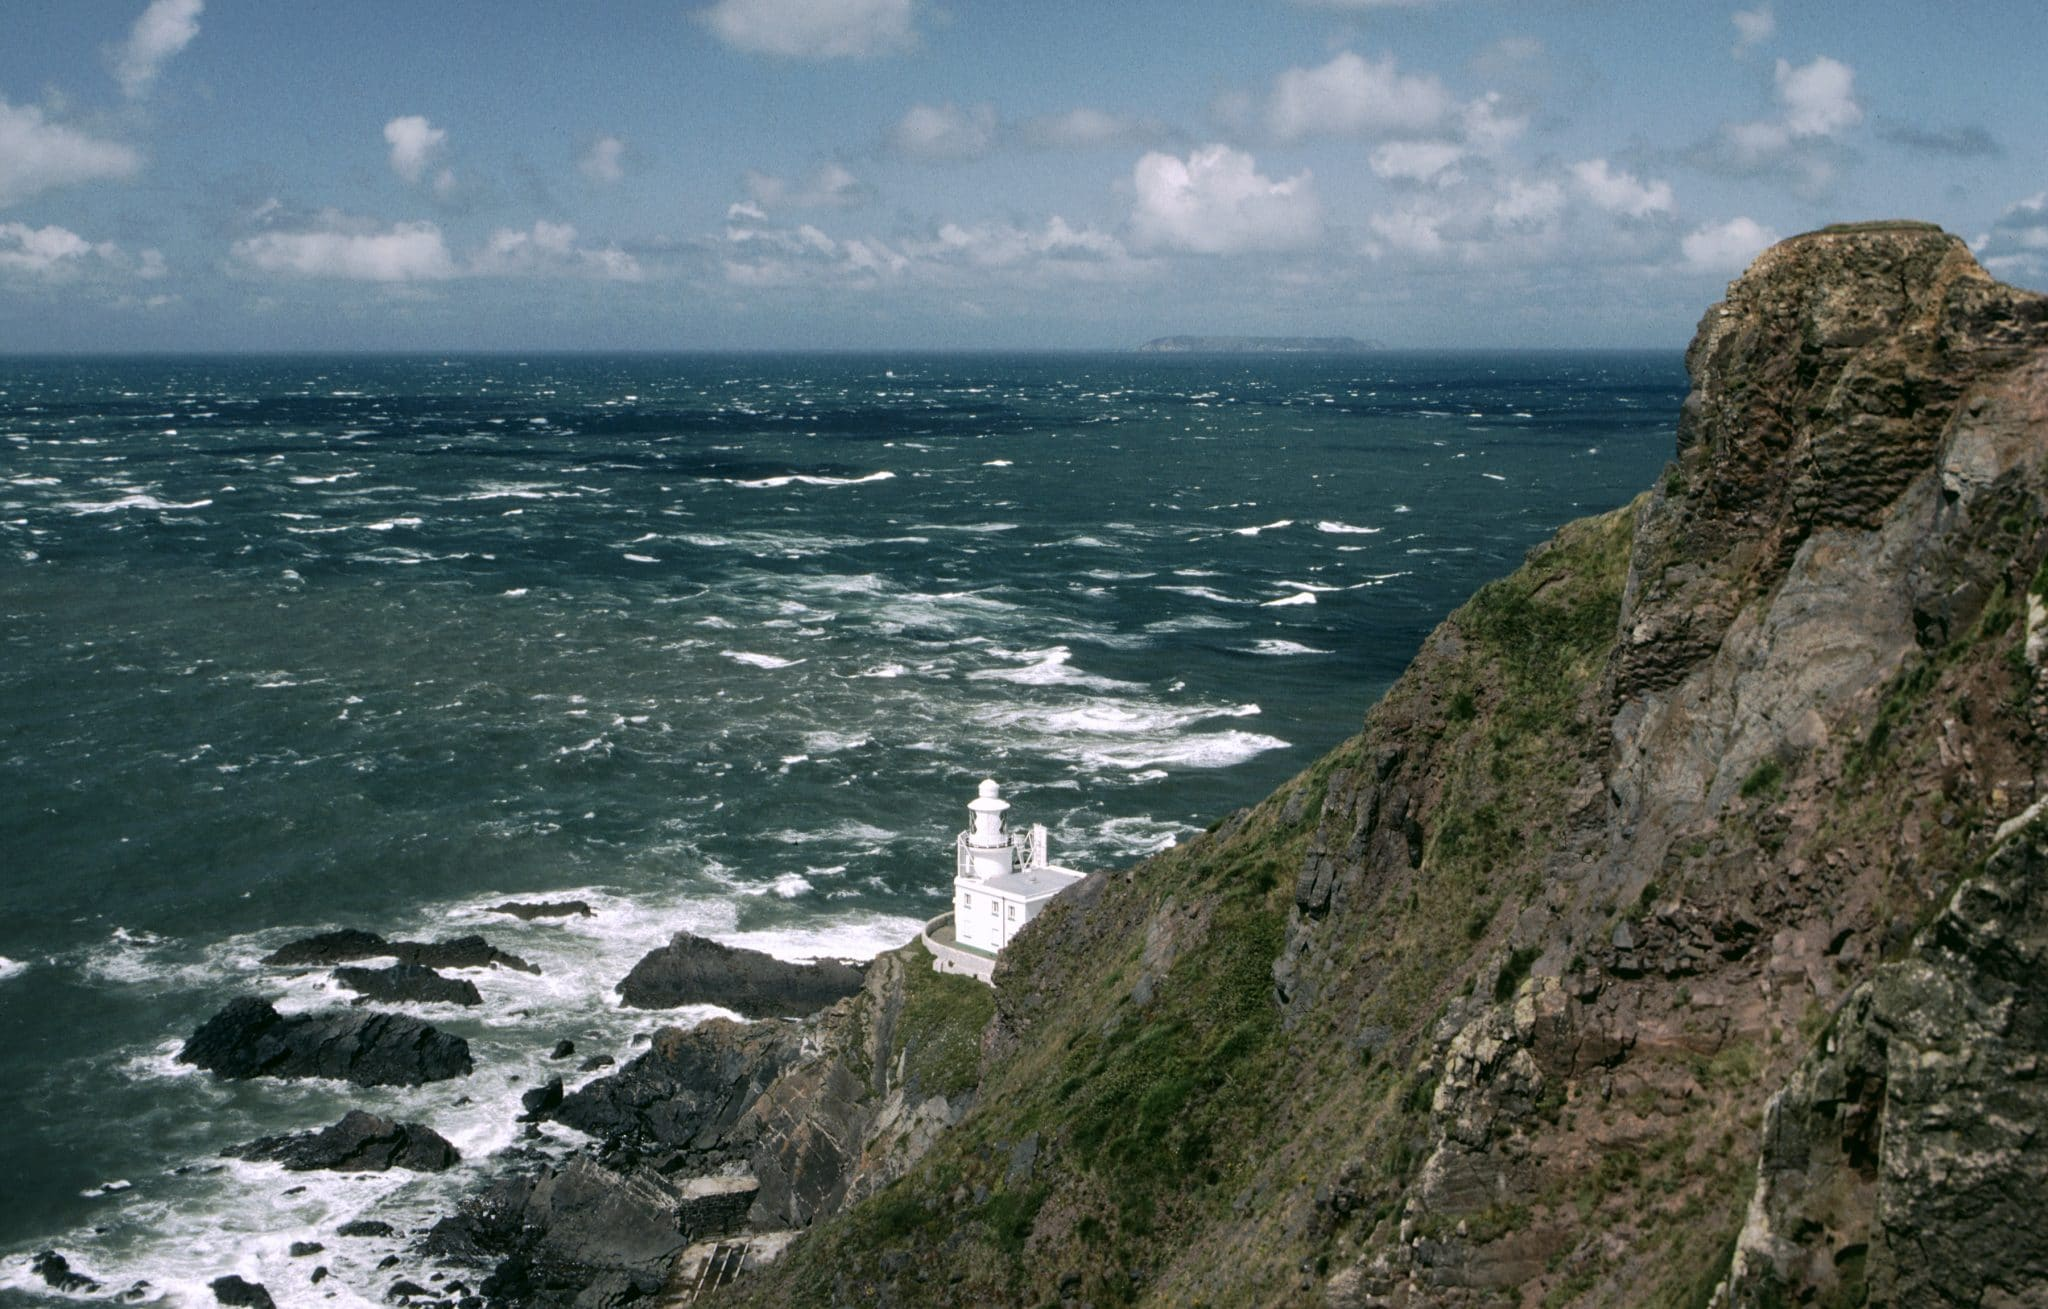 Photo of the light house at Hartland point in north Devon, looking down the cliffs to the lighthouse and out over a rough sea towards Lundy